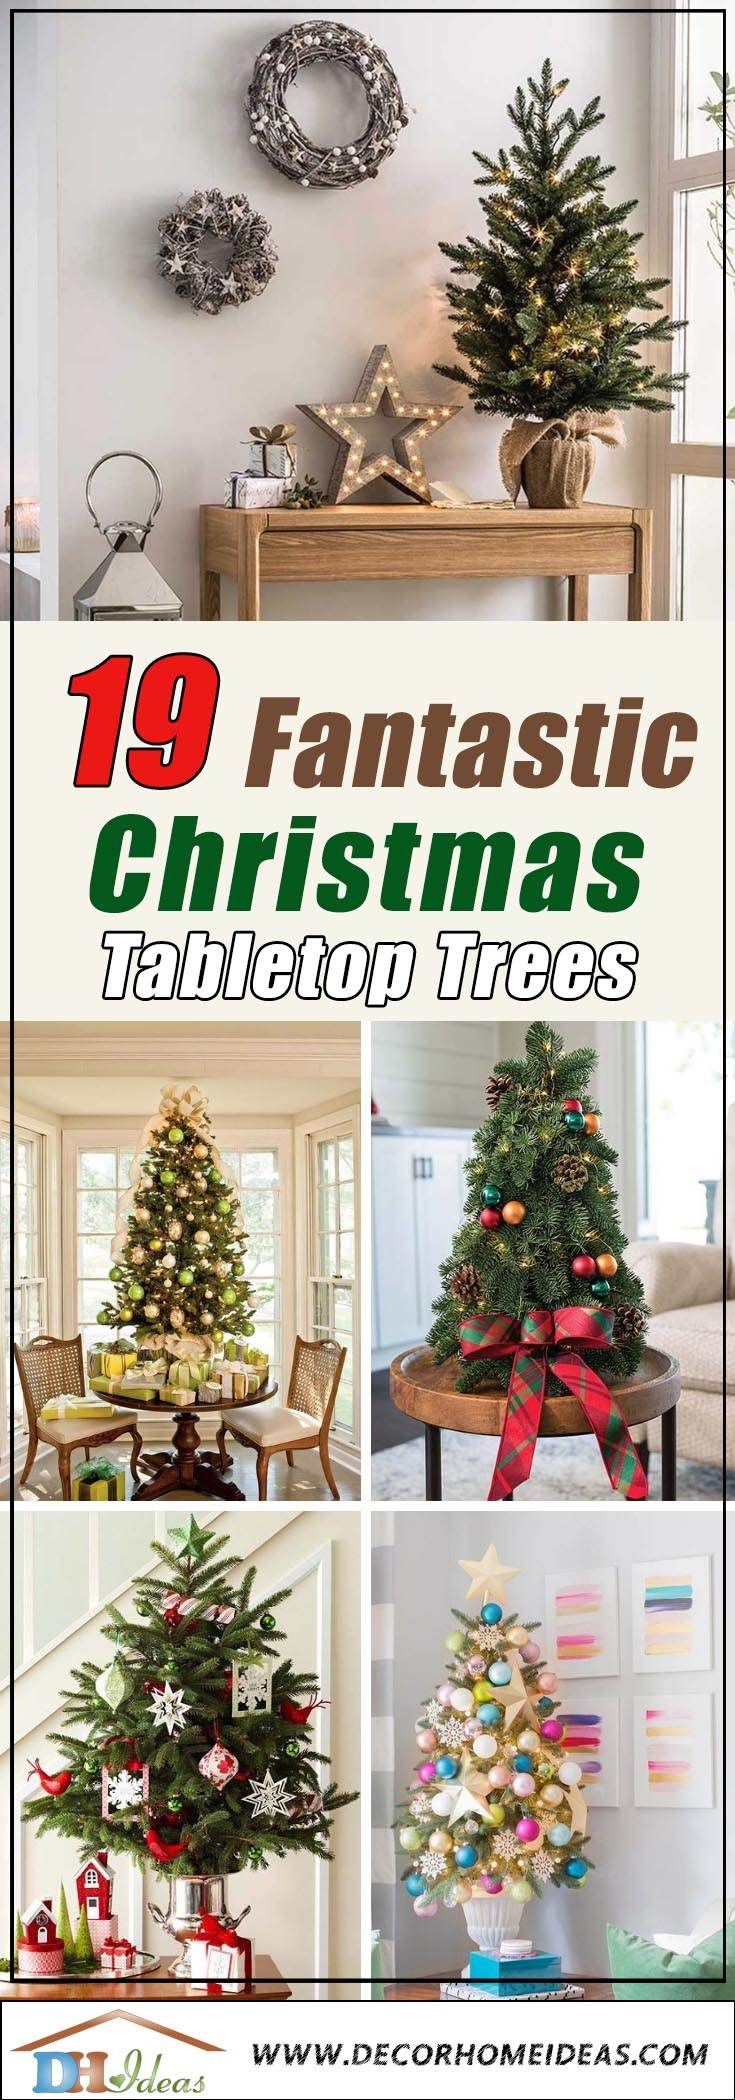 Table Top Christmas Trees #Christmas #tabletop #Christmastree #Christmasdecor #decorhomeideas